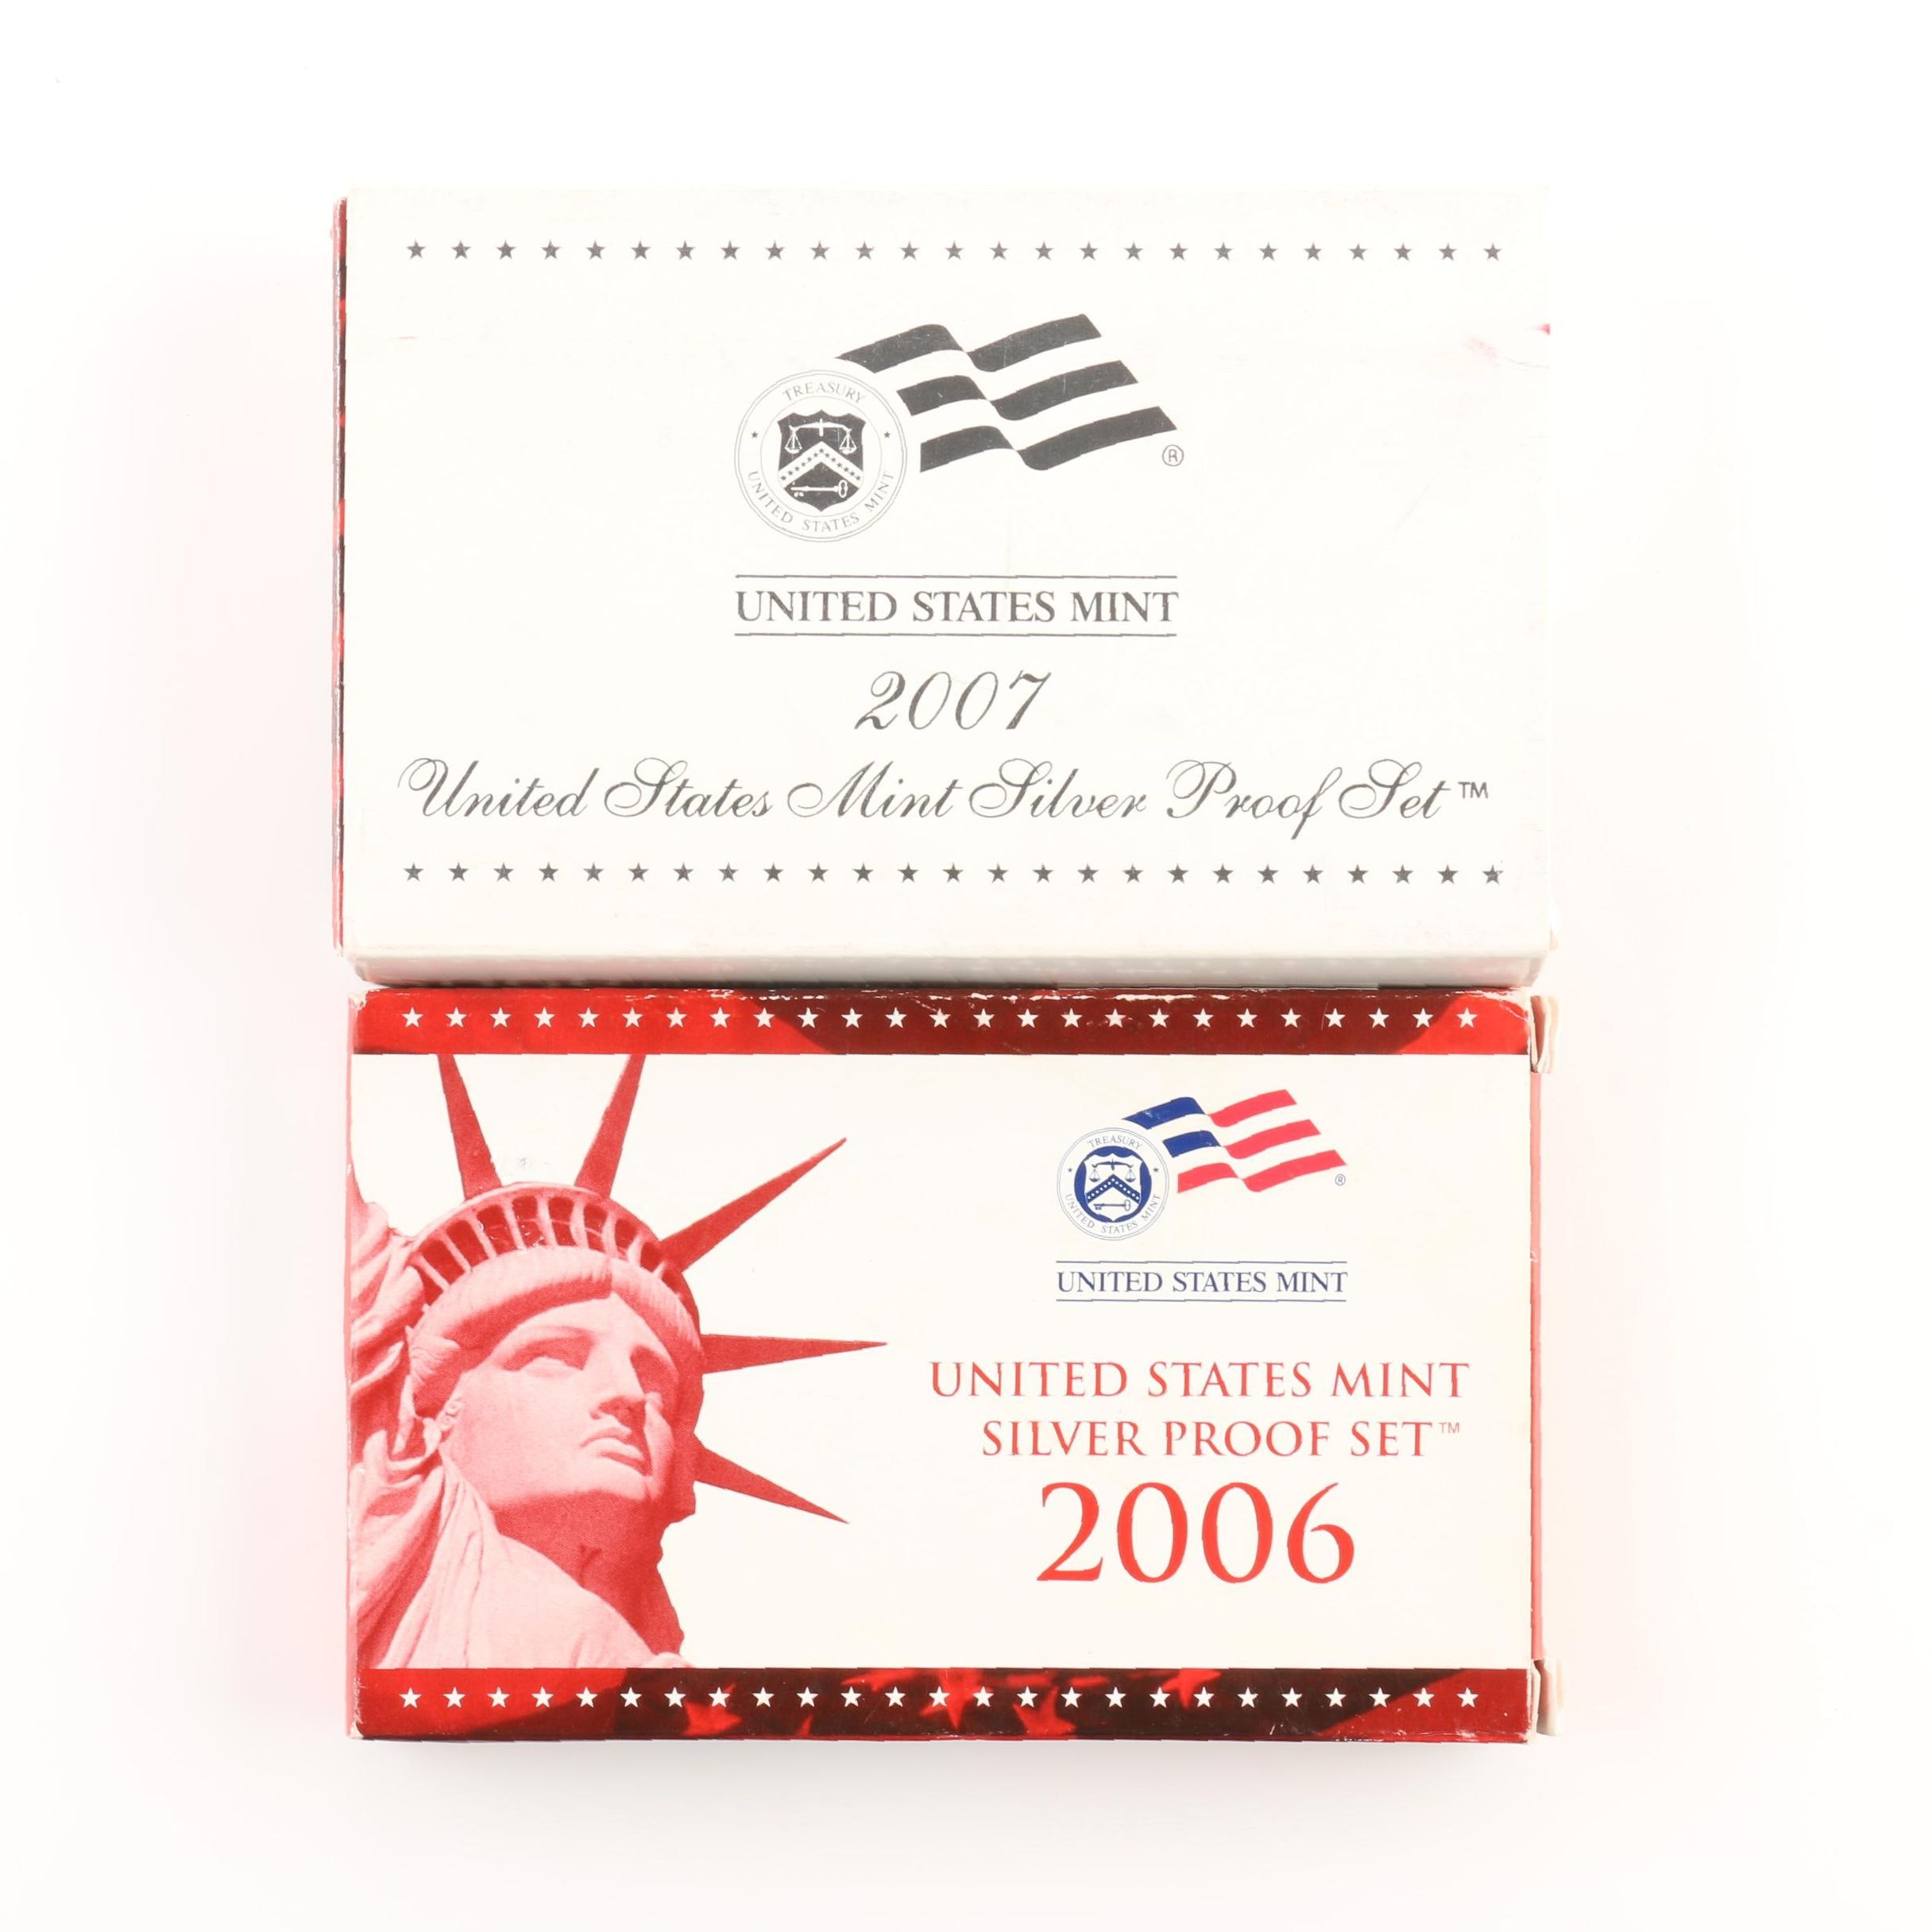 2006 and 2007 United States Mint Silver Proof Sets